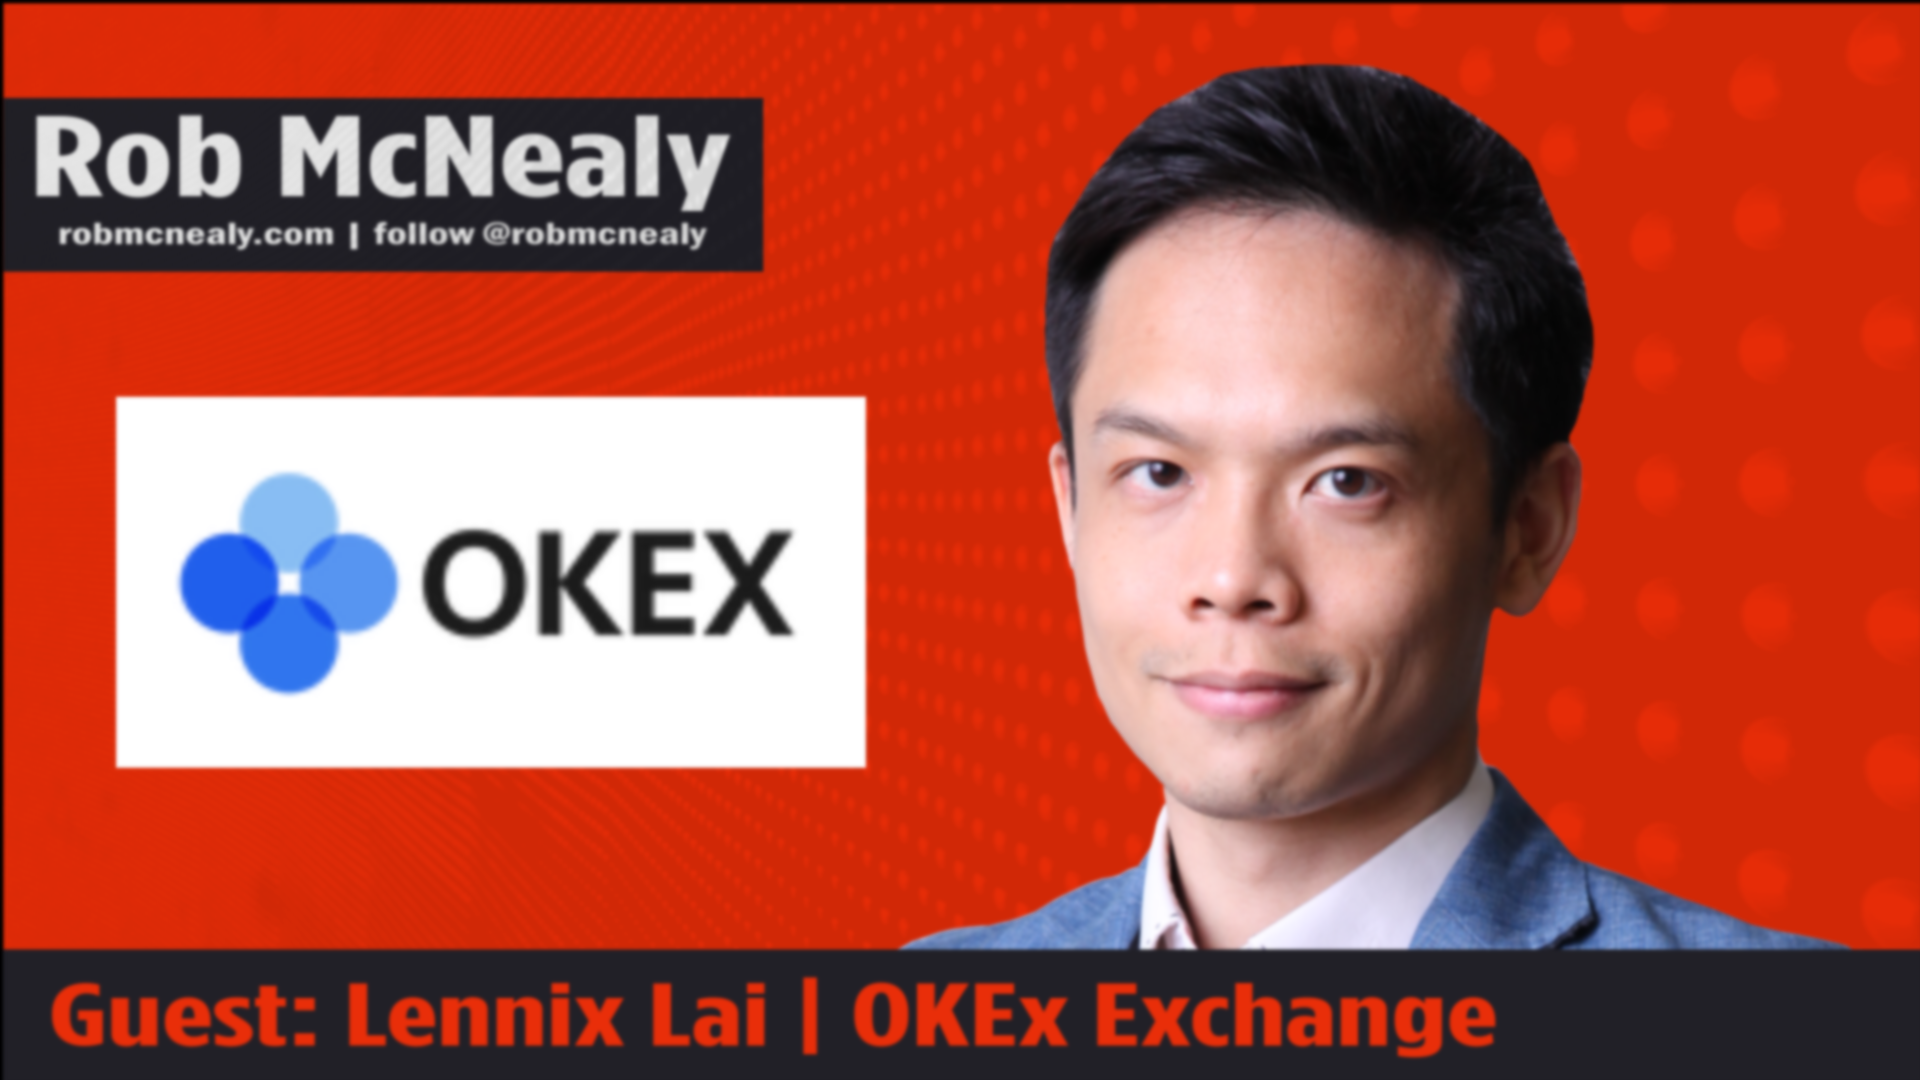 Lennix Lai, Director of Financial Markets for the OKEx Exchange